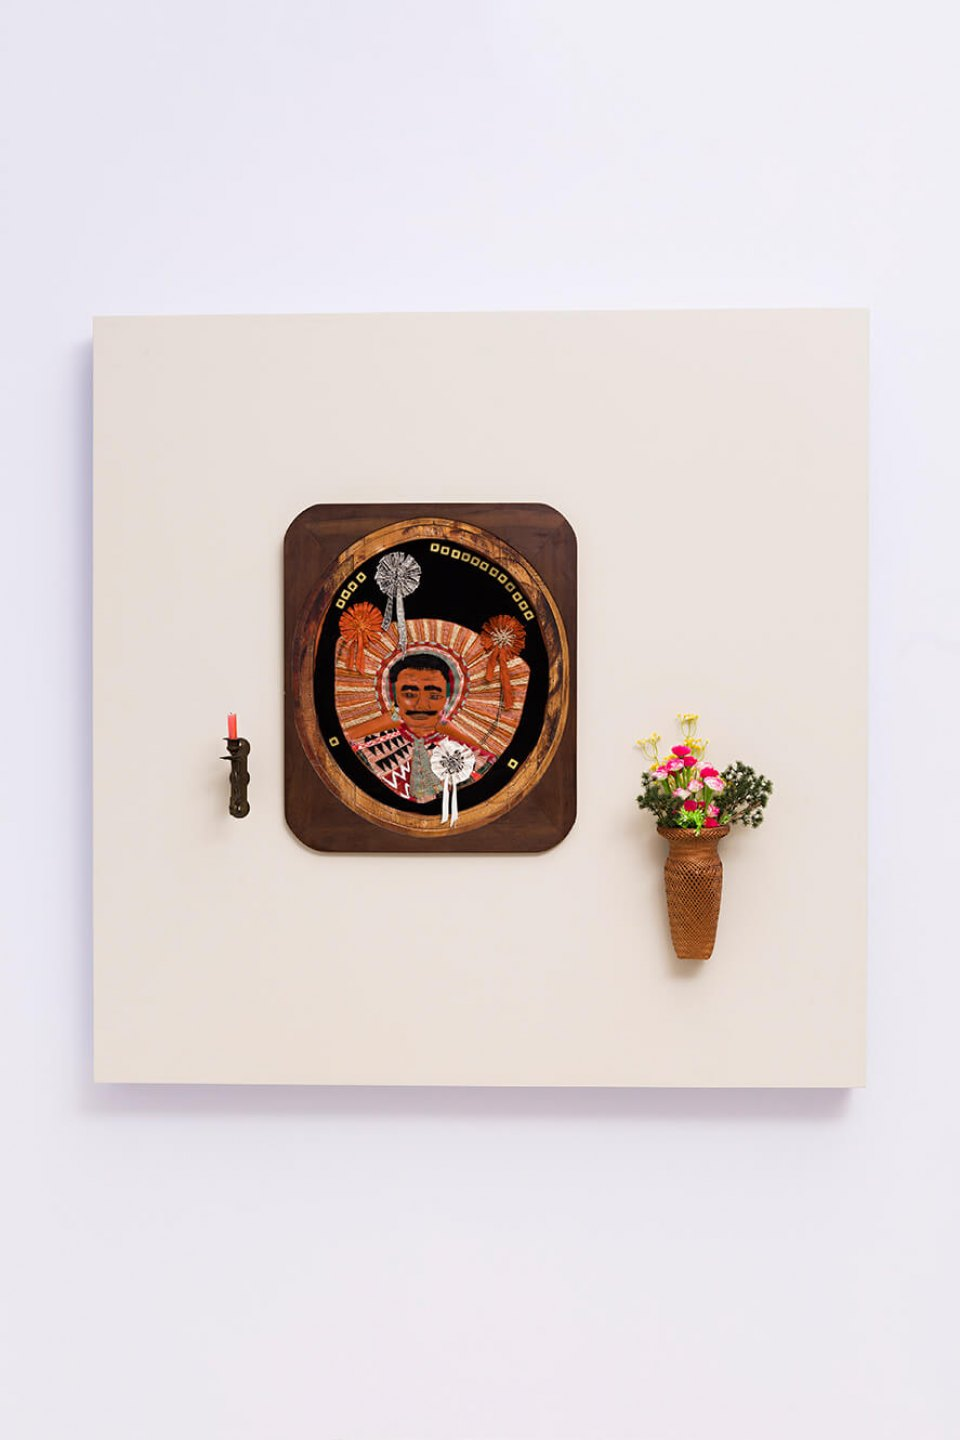 f.marquespeteado,&nbsp;<em>O altar da casa,</em>&nbsp;2012, PVC hand and machine embroidery in wood frame, wicker basket, artificial flowers hand embroidery and support for candle, 90 ×&nbsp;94 × 19 cm - Mendes Wood DM